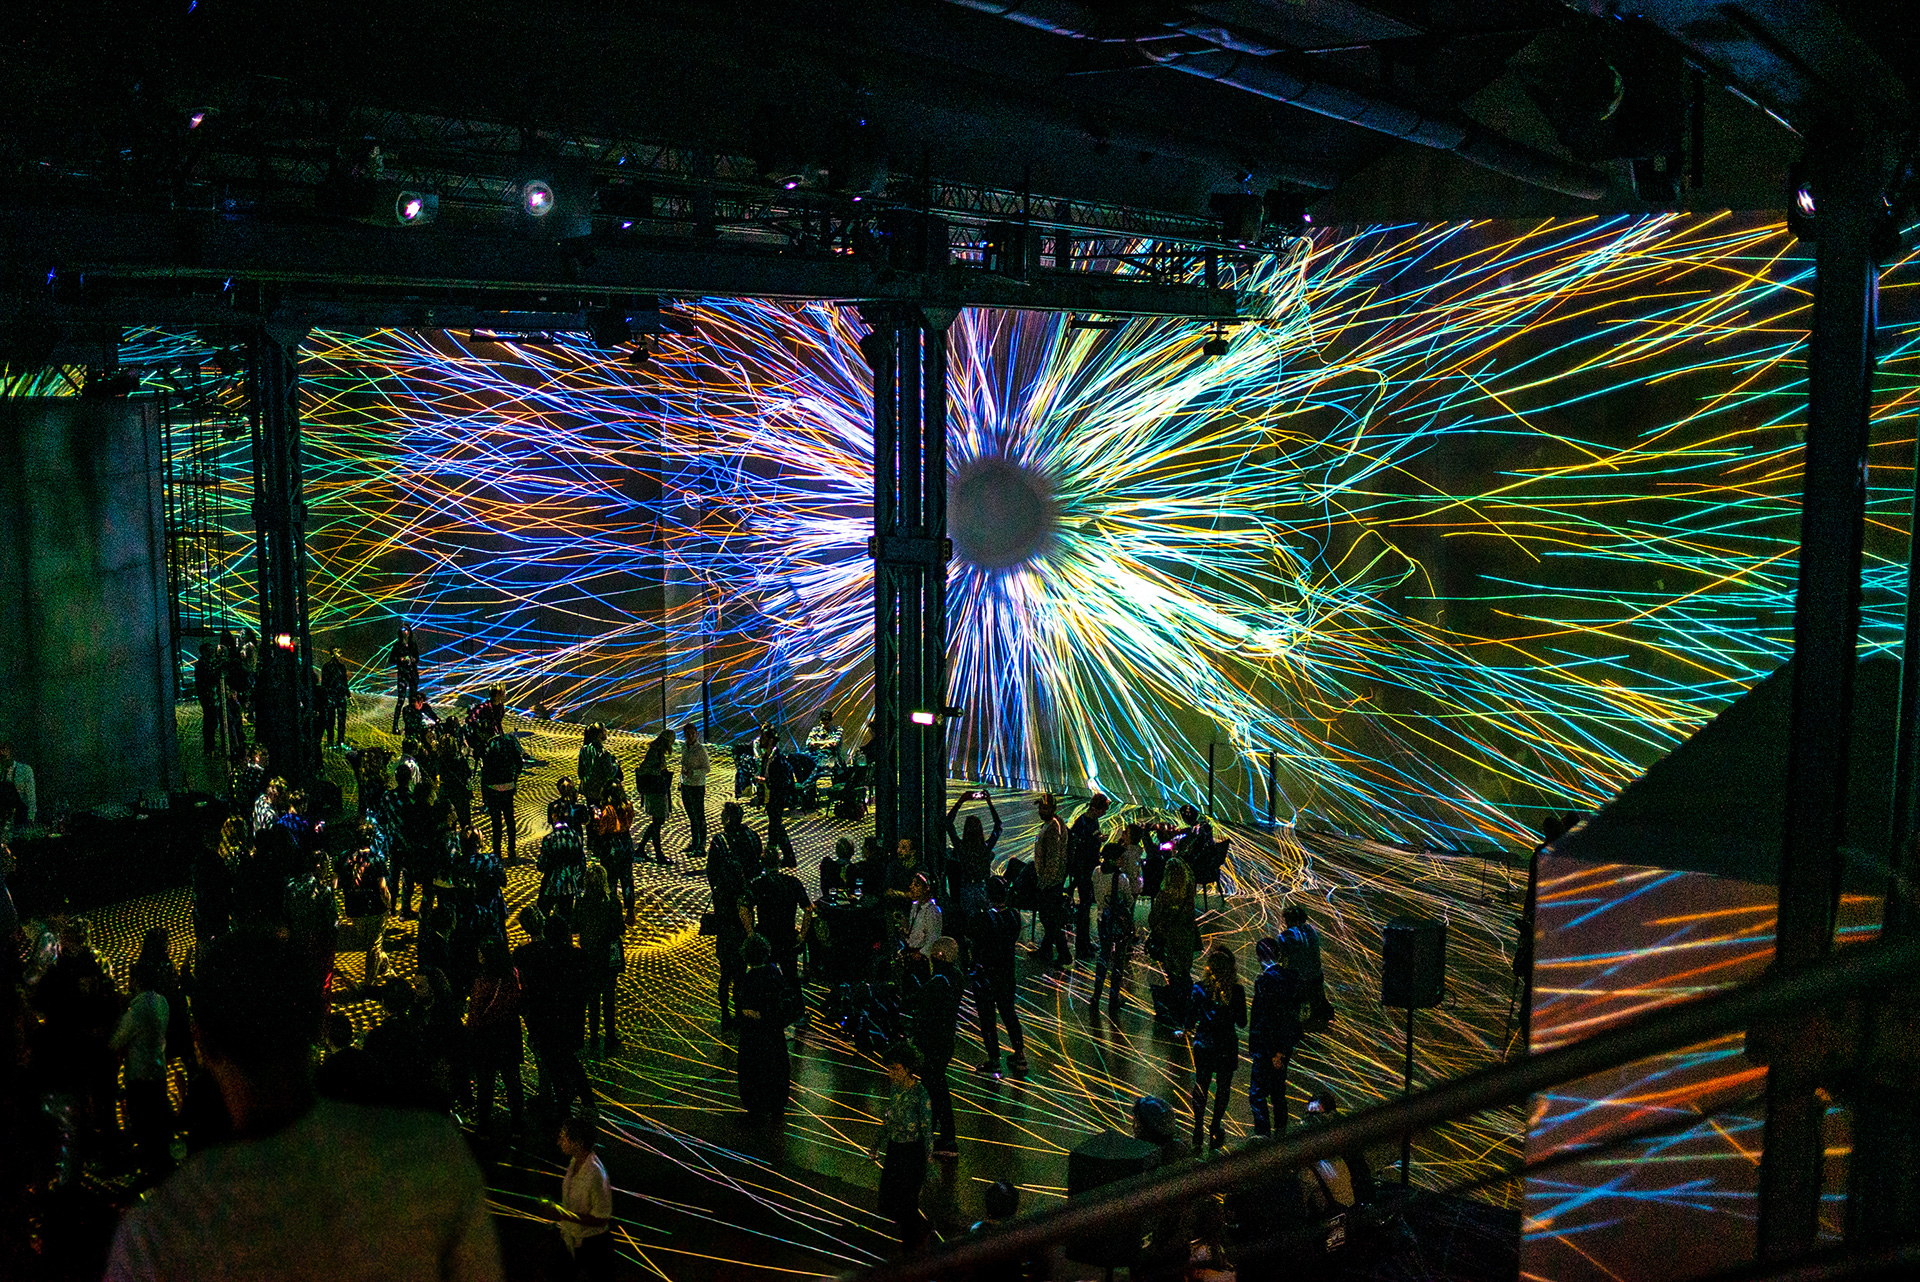 The visitors at the Immersive Art Festival in Paris | Immersive Art Festival | STIRworld